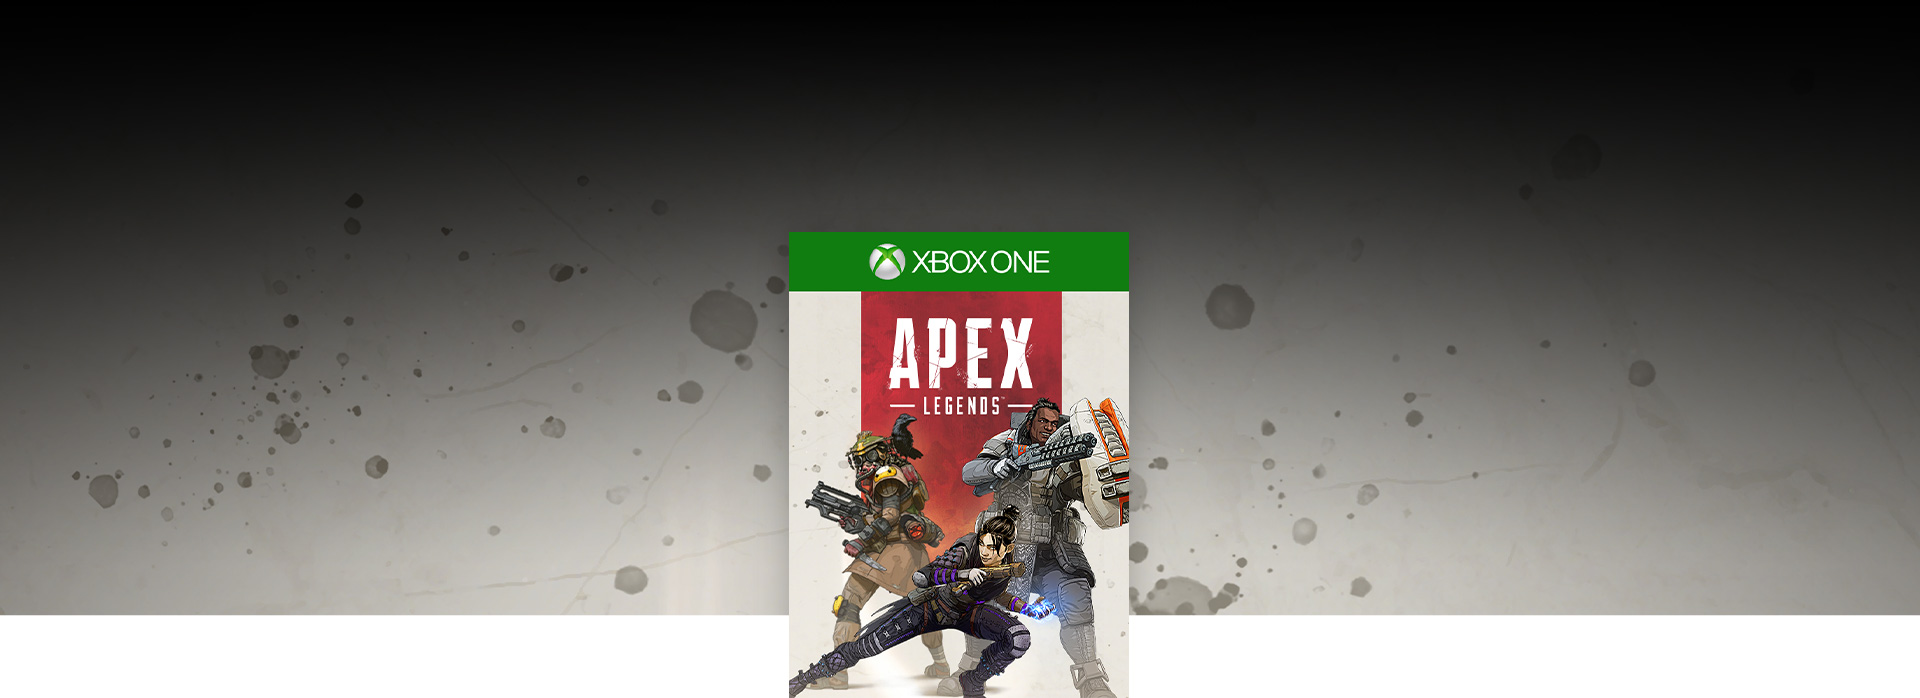 Apex Legends box shot over gray textured background